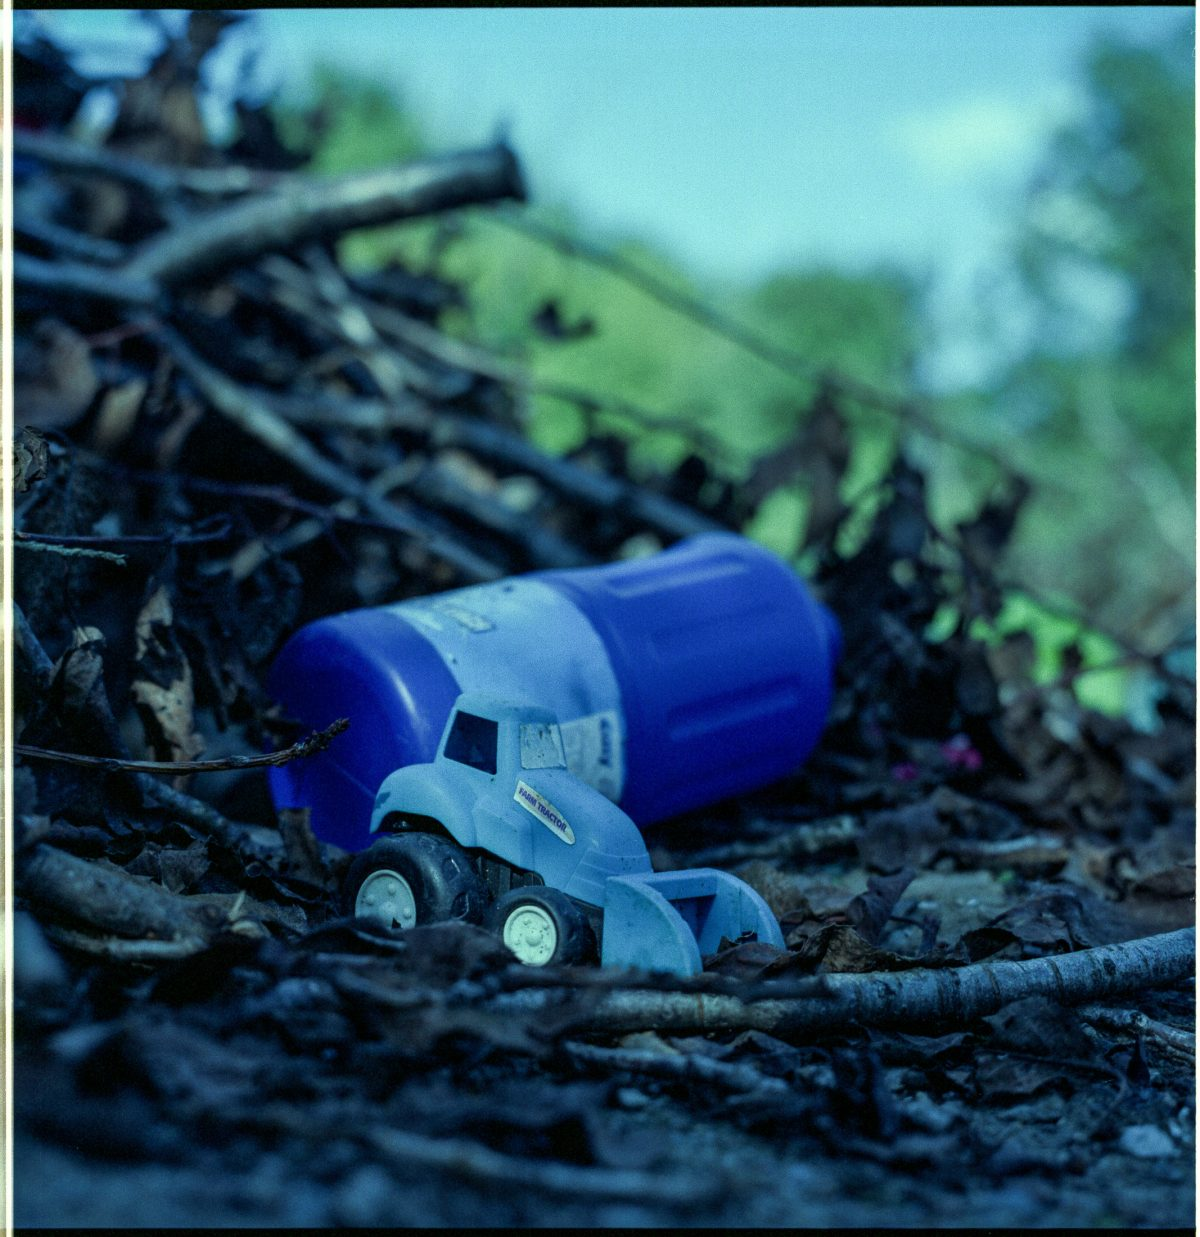 A colour photo of a blue plastic toy tractor and a blue bleach bottle on a pile of twigs.